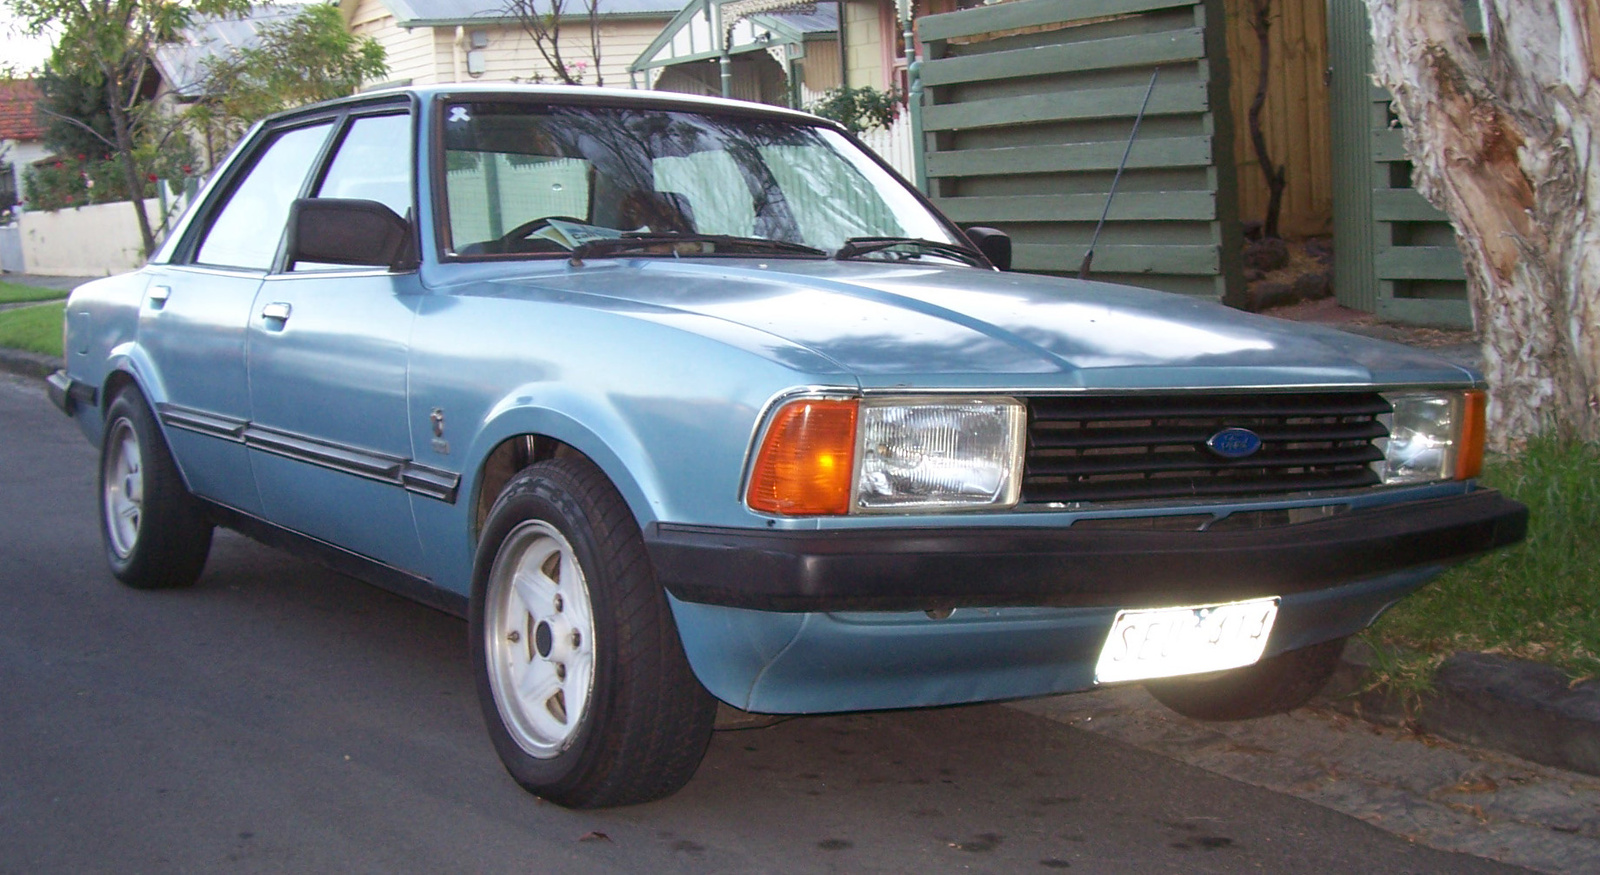 Ford cortina 1981 photo - 6